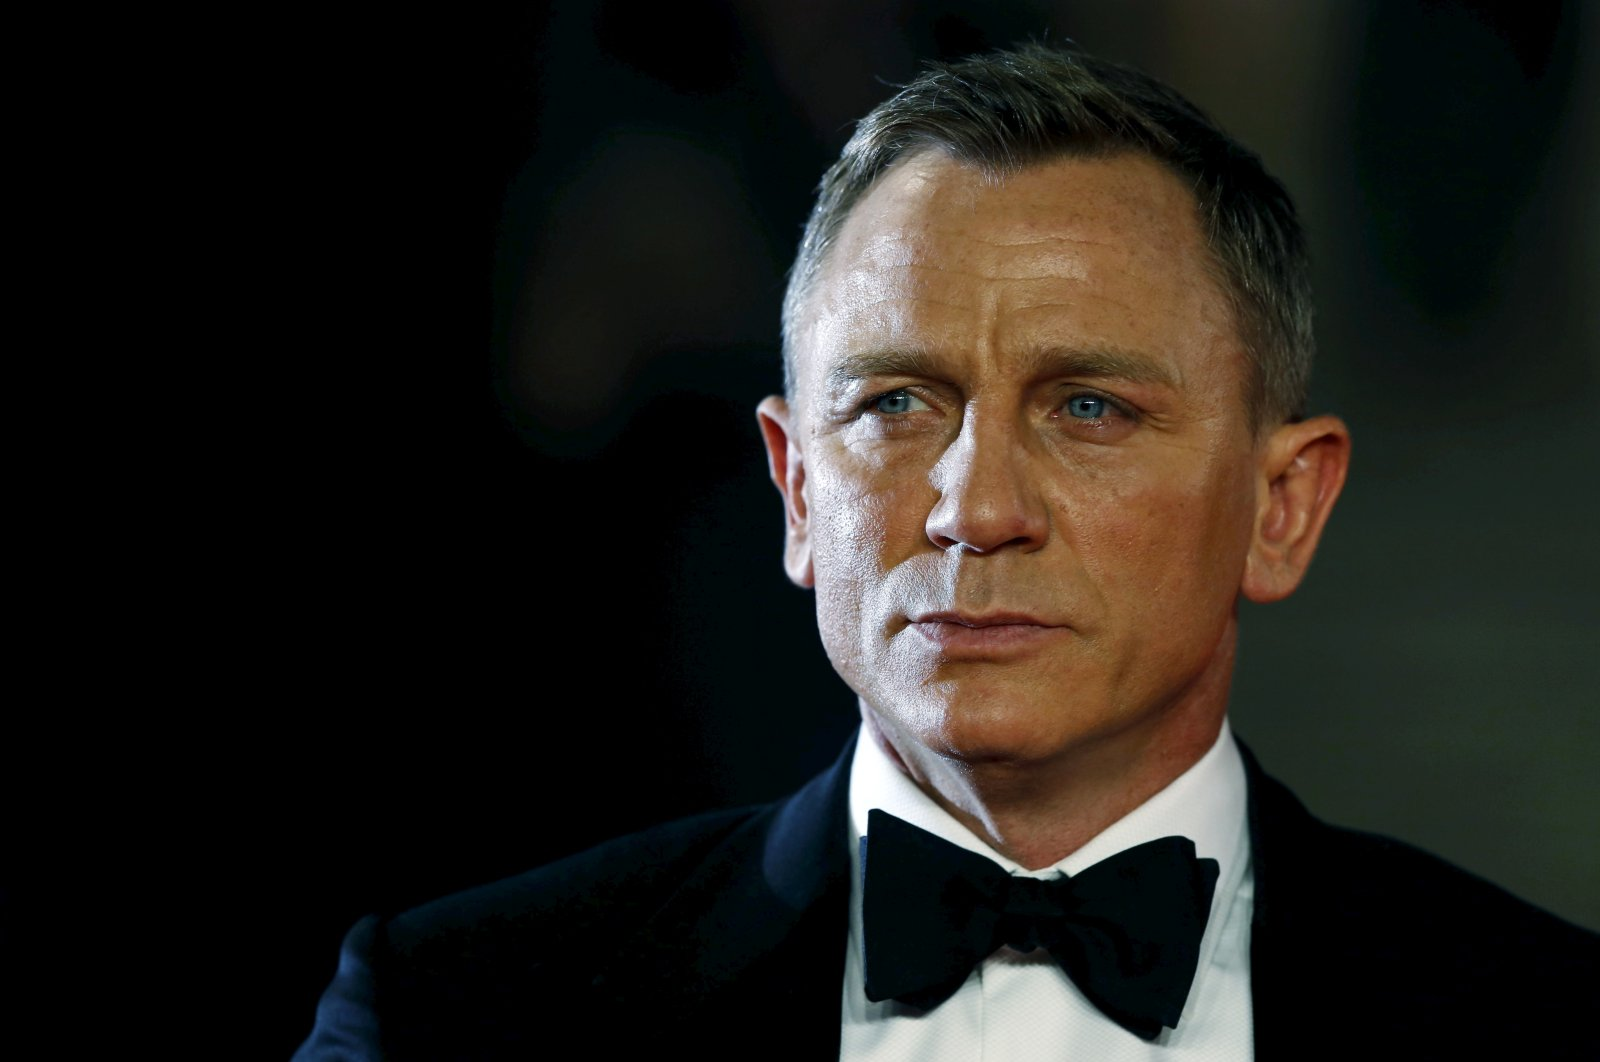 """Daniel Craig poses for photographers as he attends the world premiere of the new James Bond 007 film """"Spectre"""" at the Royal Albert Hall in London, Britain, Oct. 26, 2015. (REUTERS Photo)"""